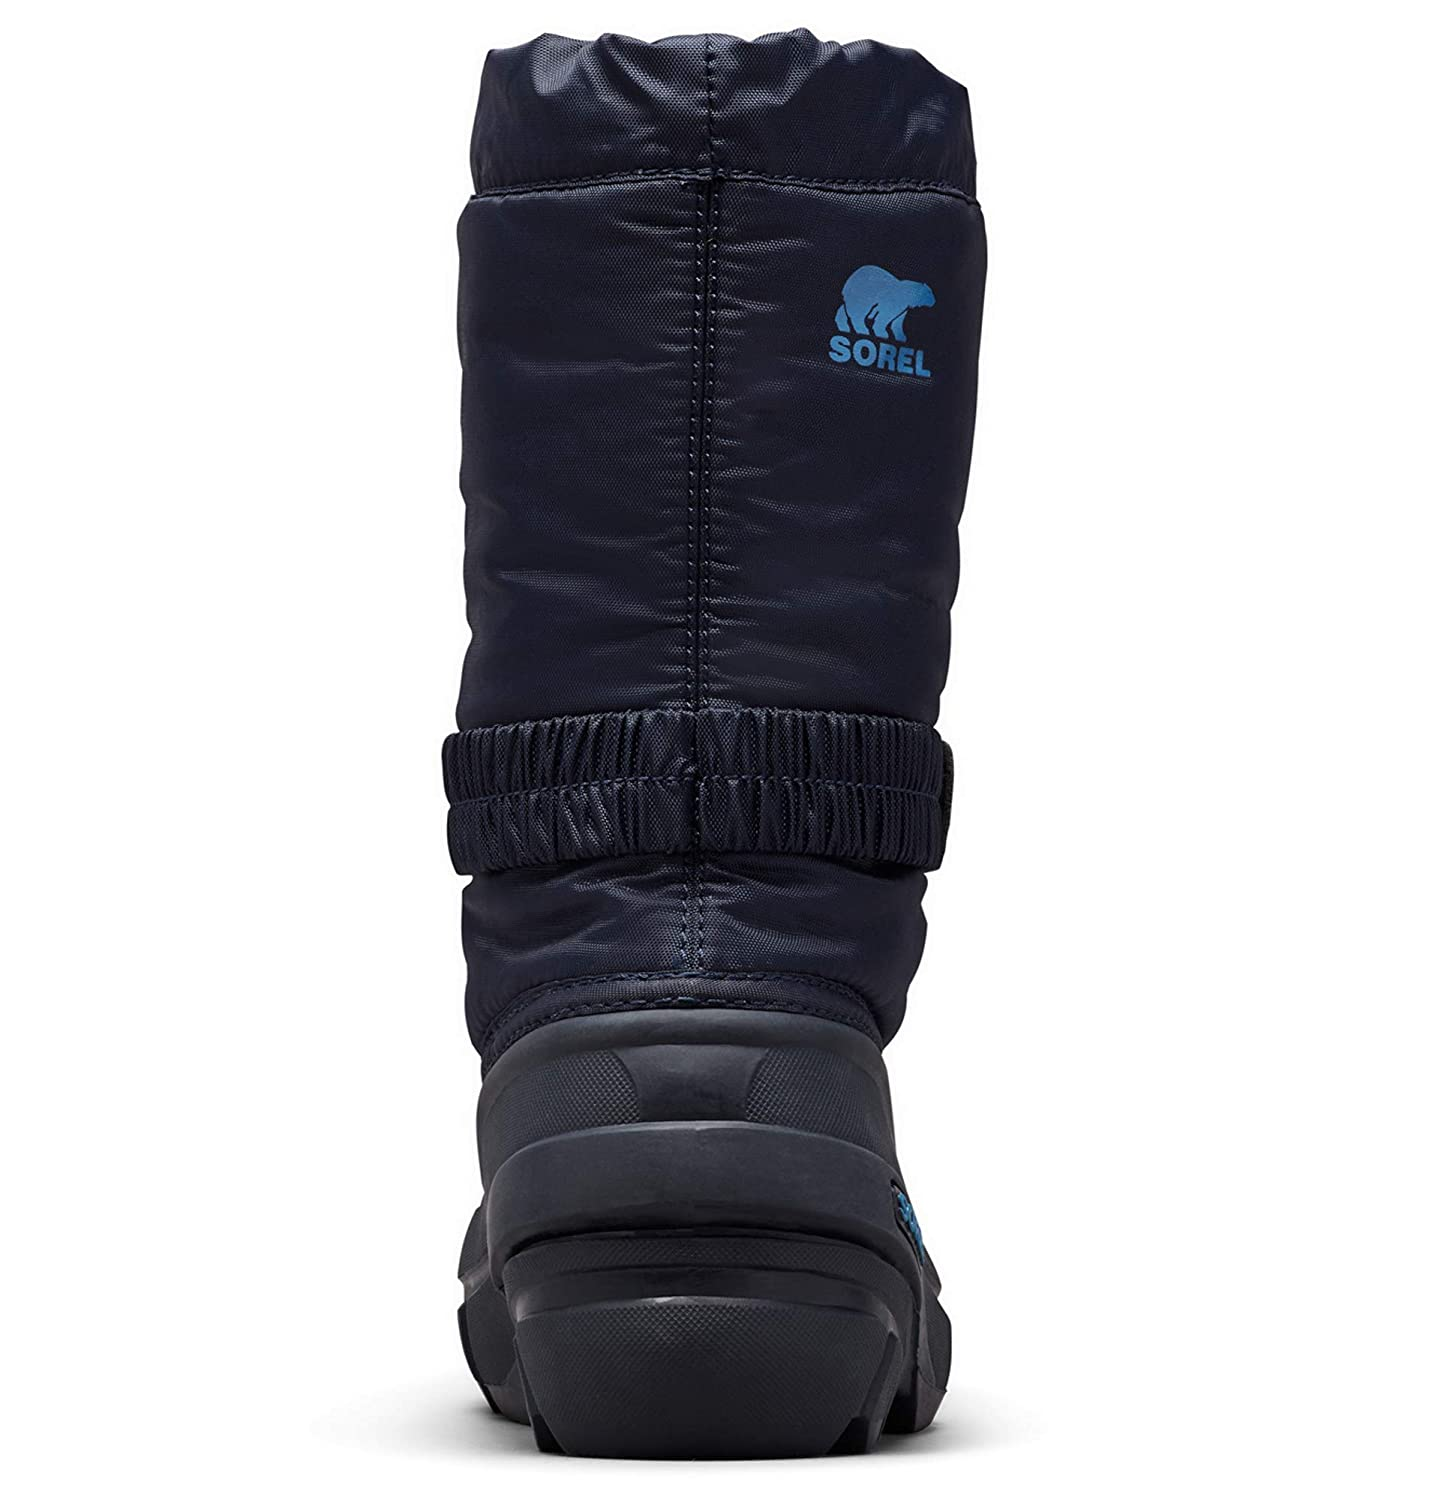 SOREL Youth Flurry Winter Snow Boots for Kids